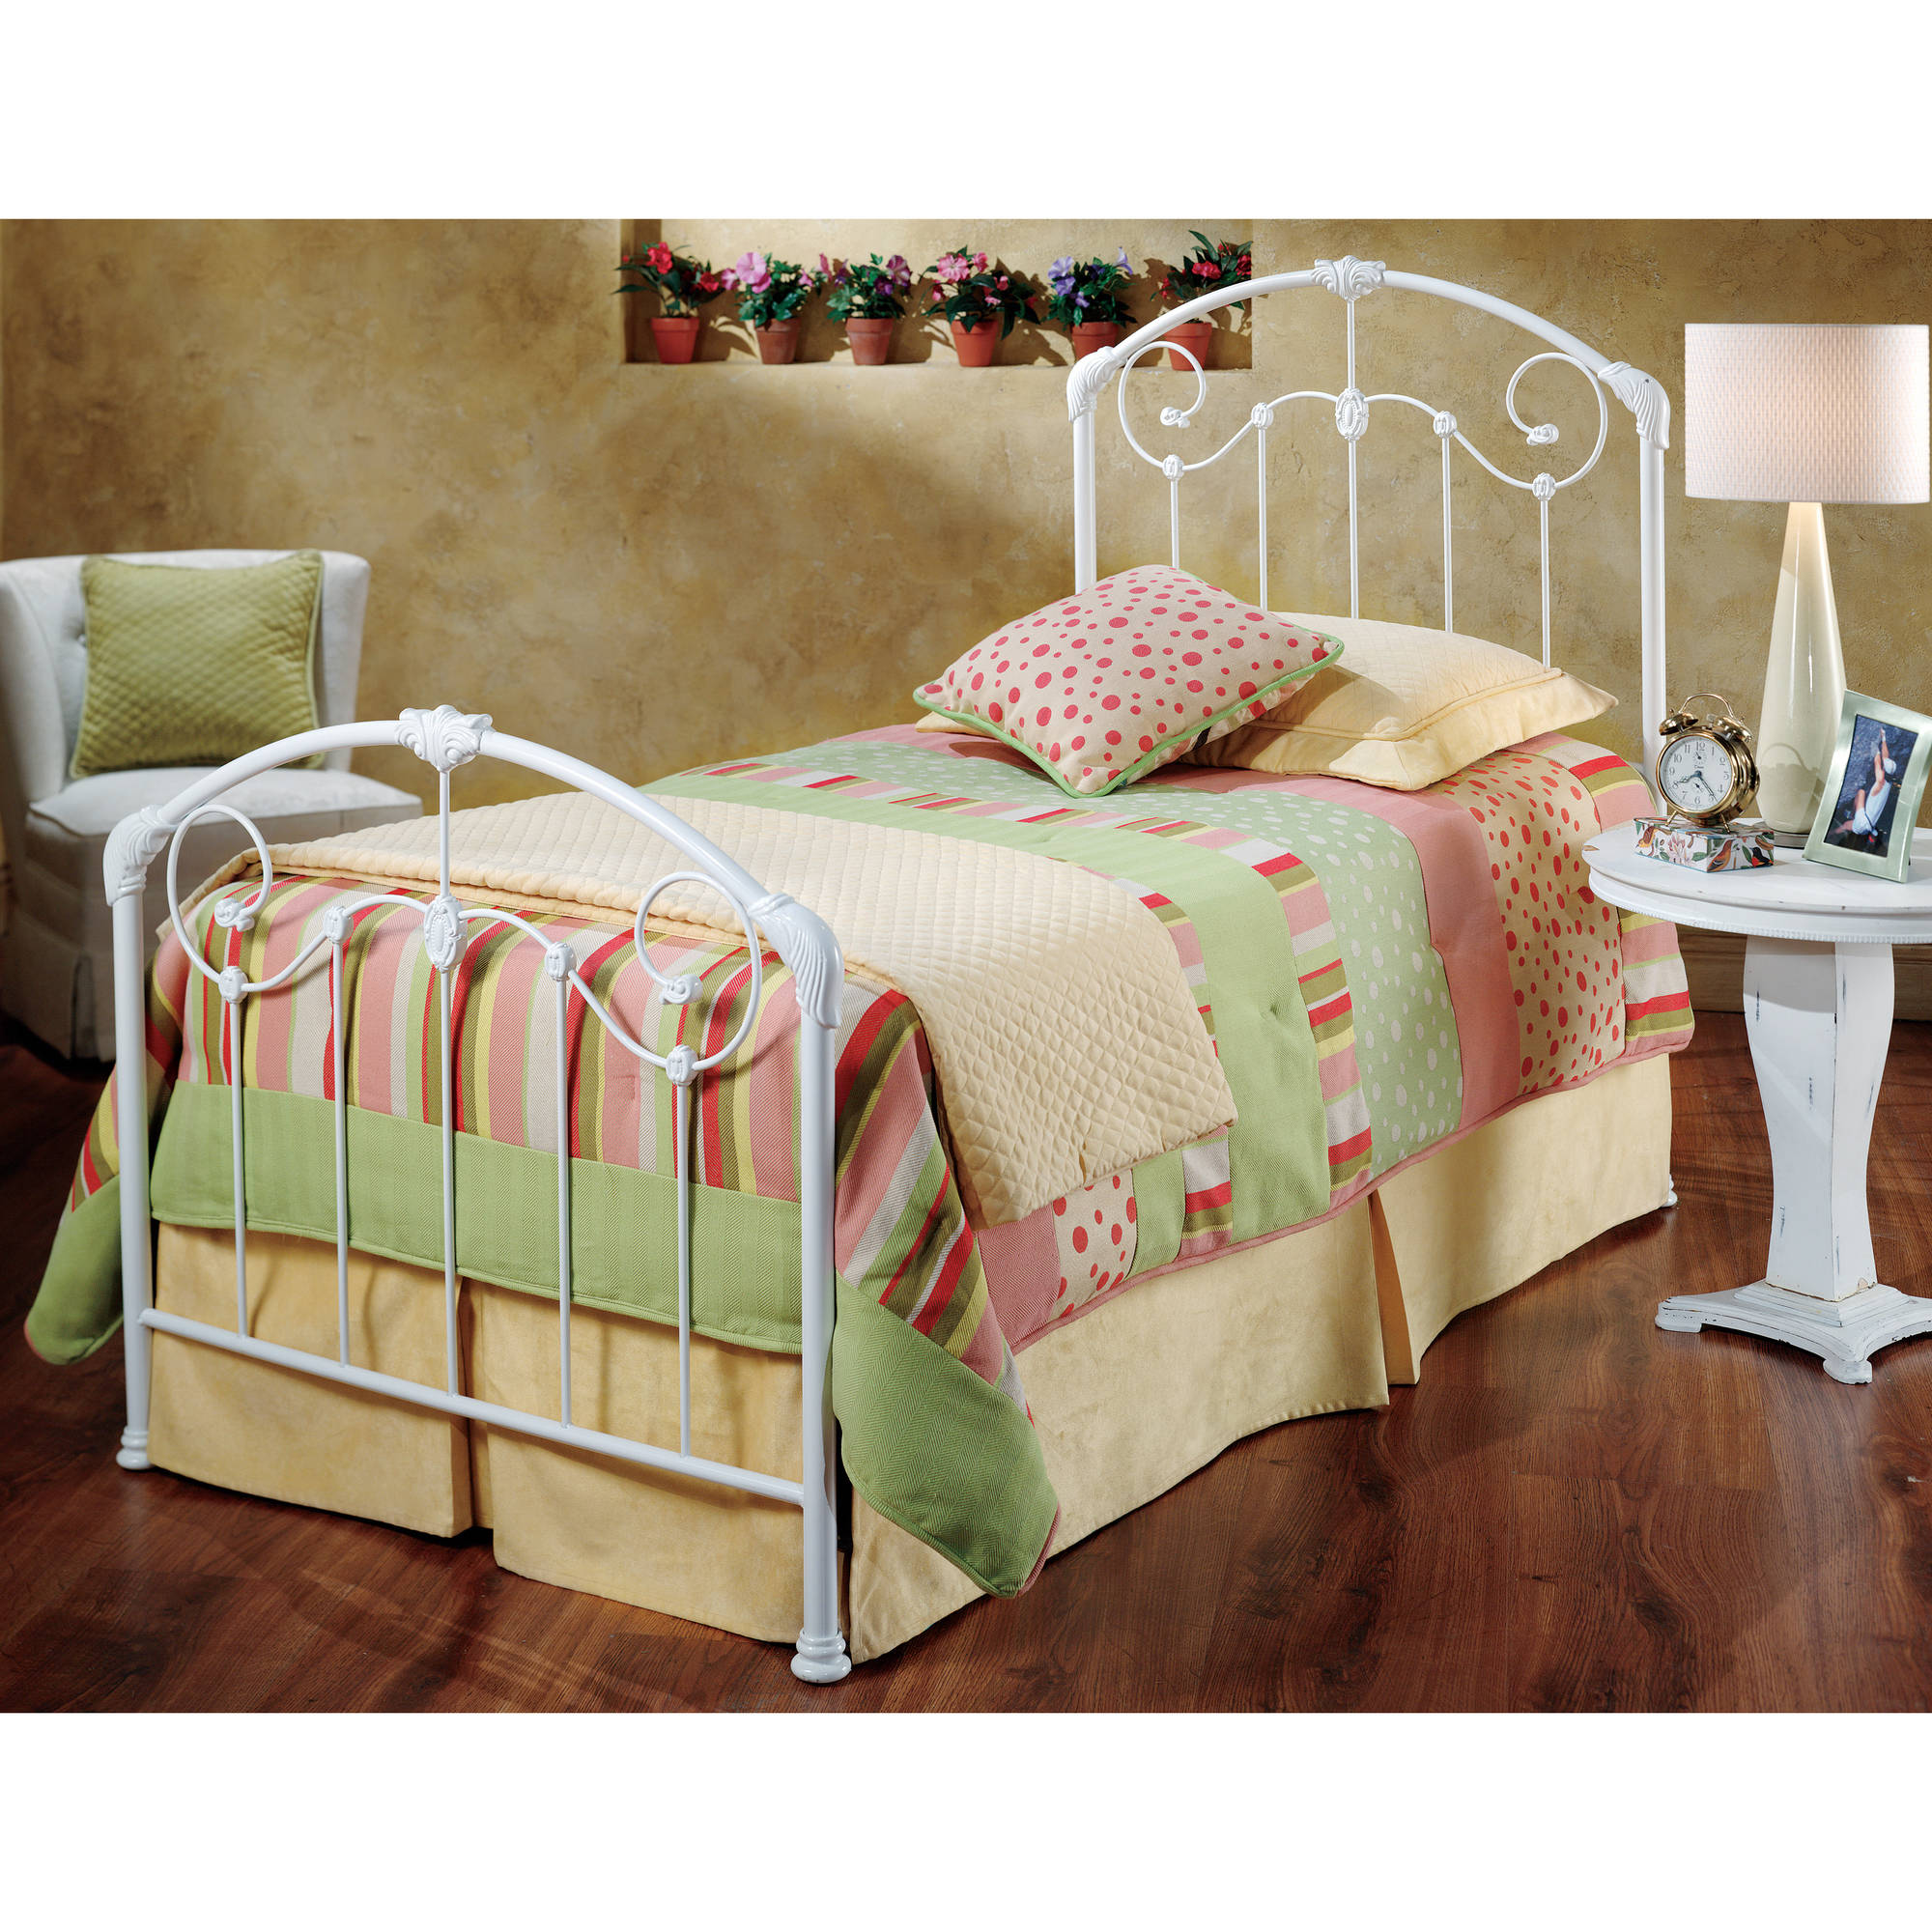 Hillsdale Furniture Maddie Twin Bed with Bedframe